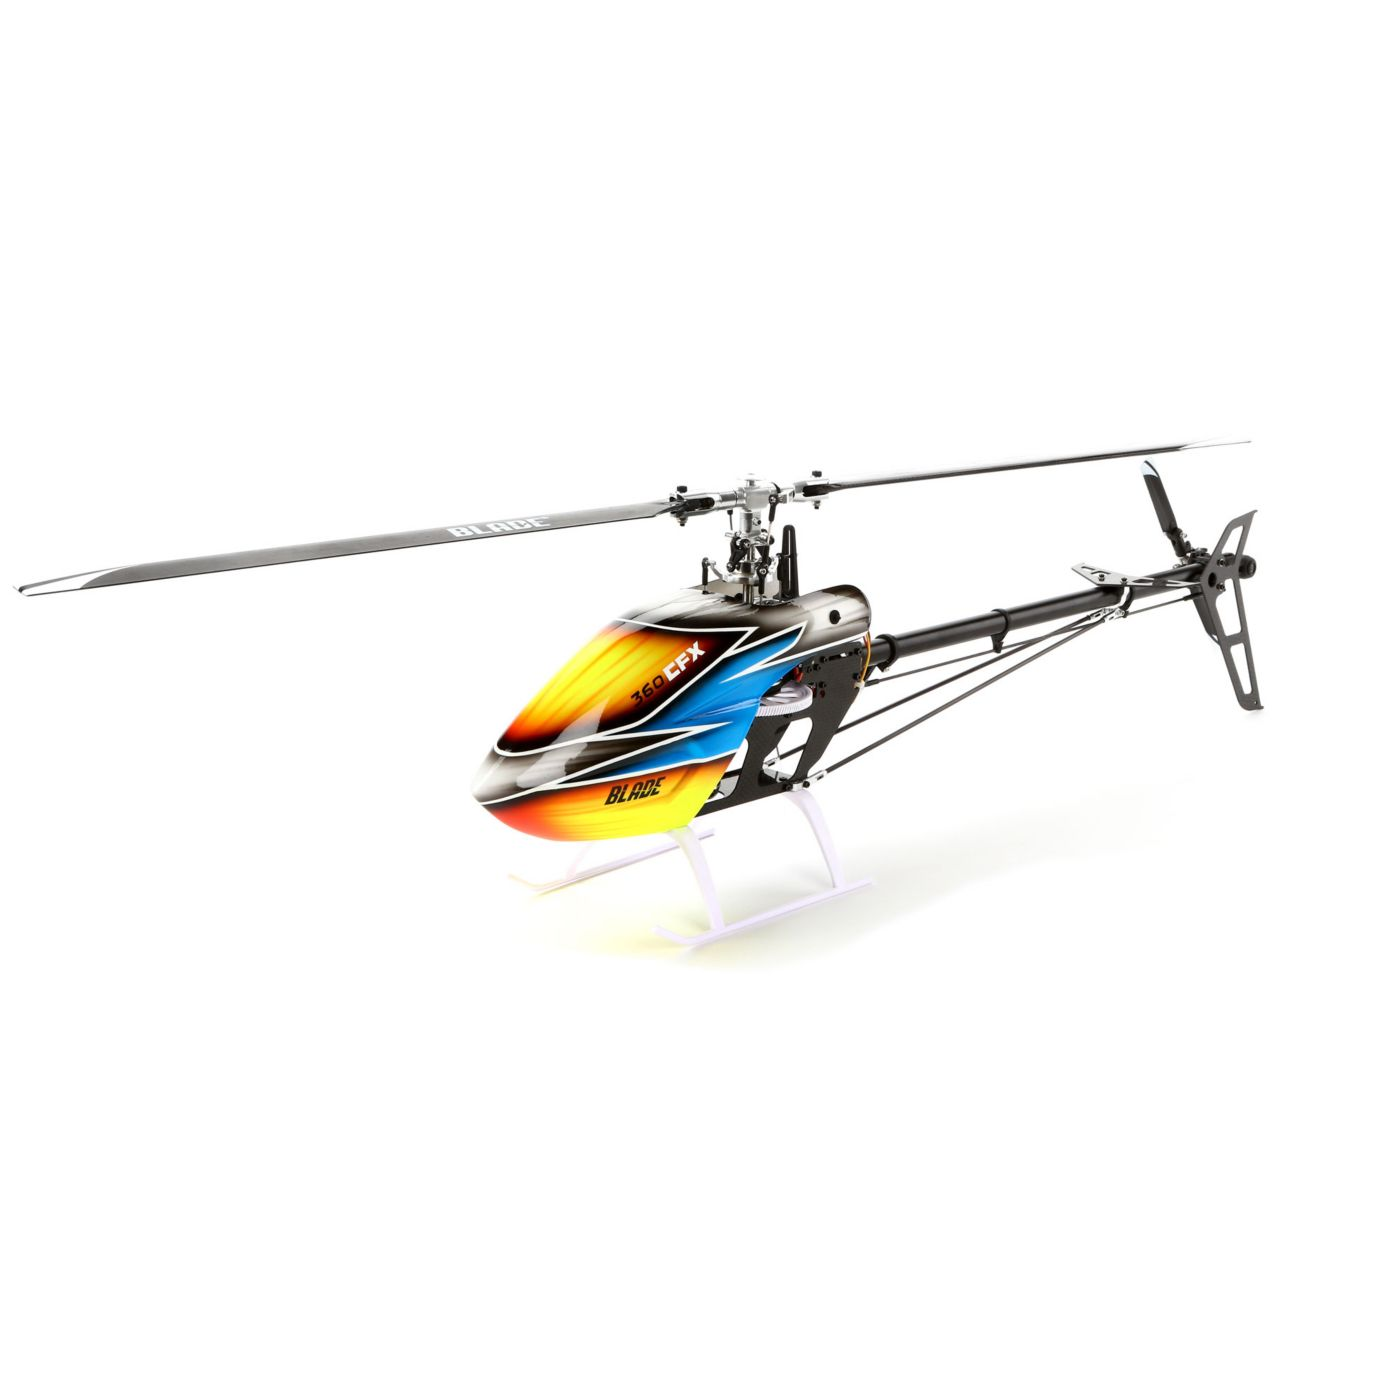 Enjoyable Blade 450 3D Rc Helicopter Parts Diagram Blade Free Engine Image For Wiring 101 Akebretraxxcnl